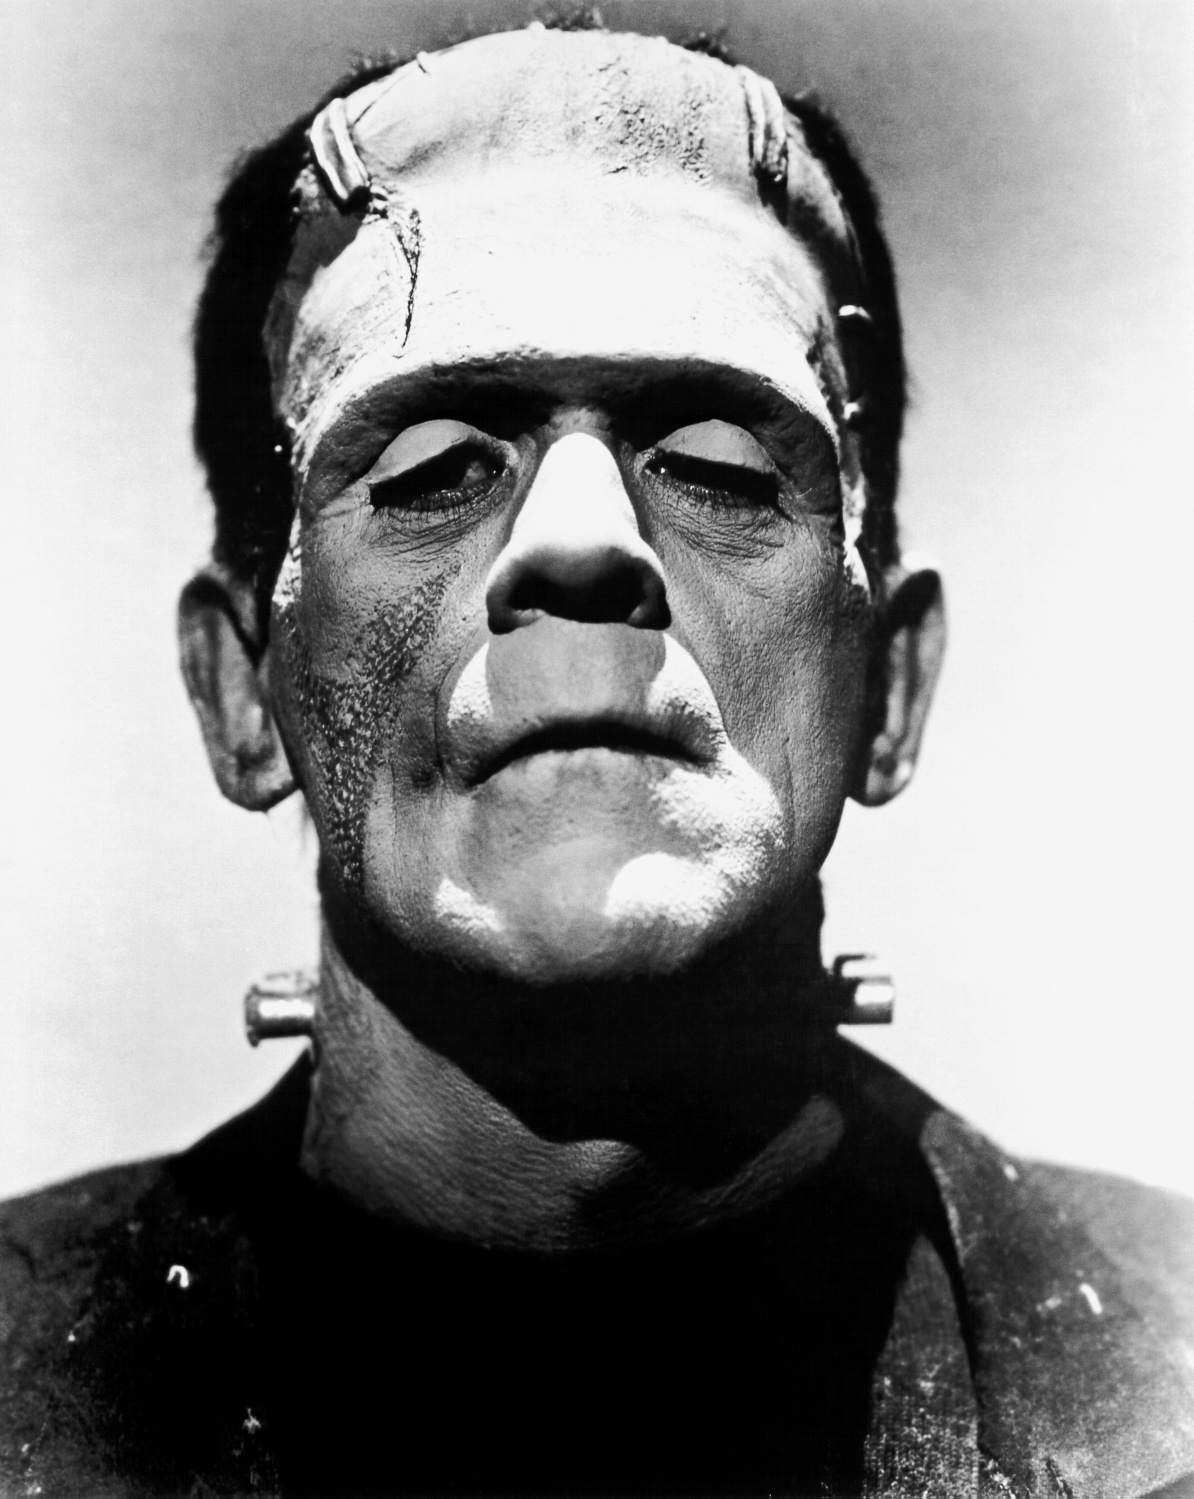 File:Frankenstein's monster (Boris Karloff).jpg - Wikipedia, the ...